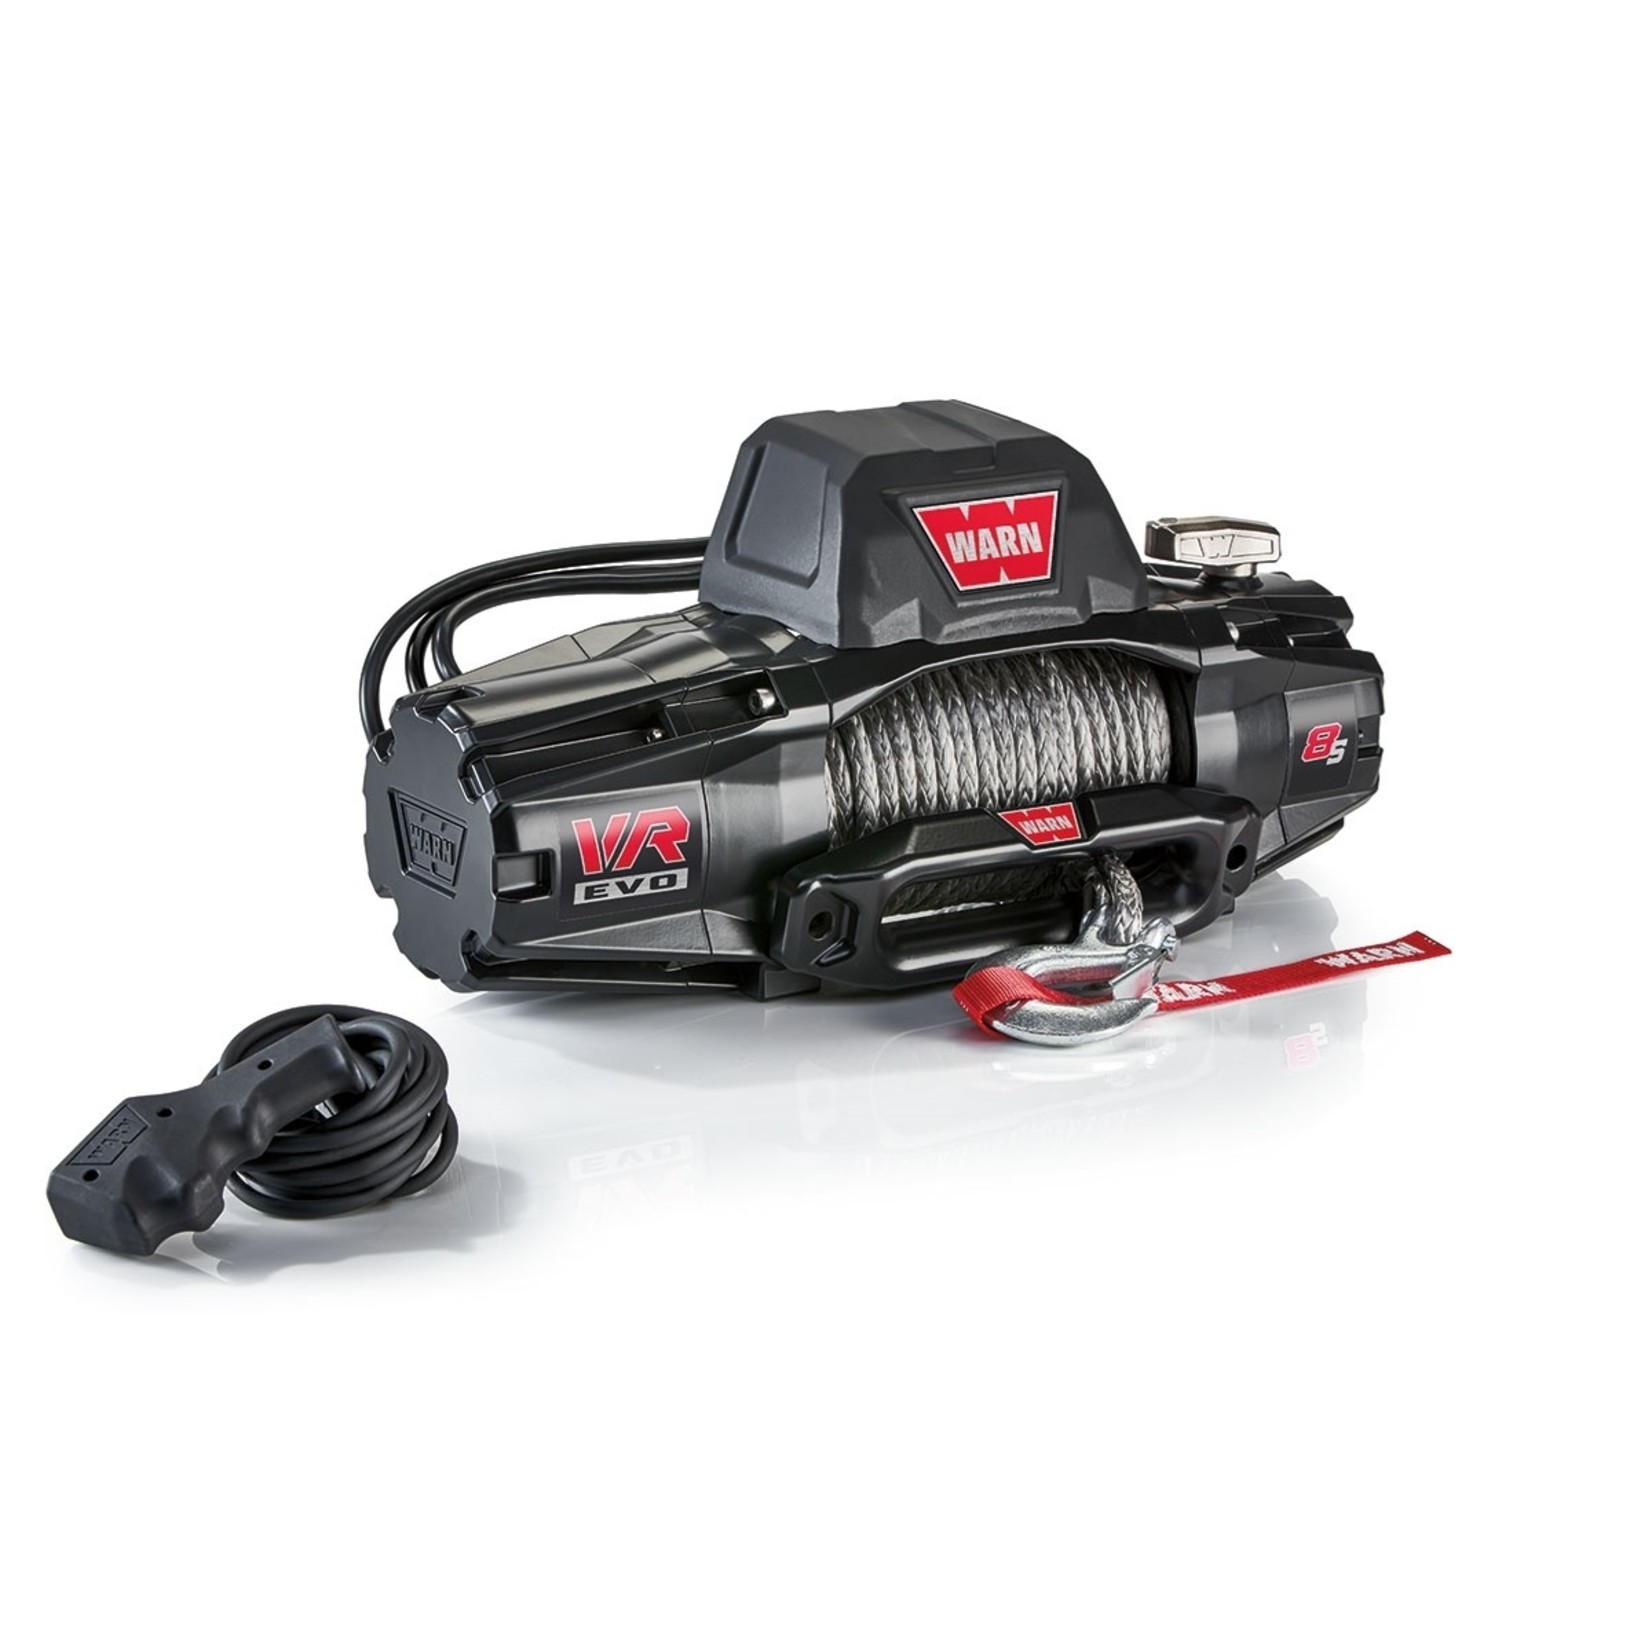 Warn VR EVO 8-S Winch w/Synthetic Rope